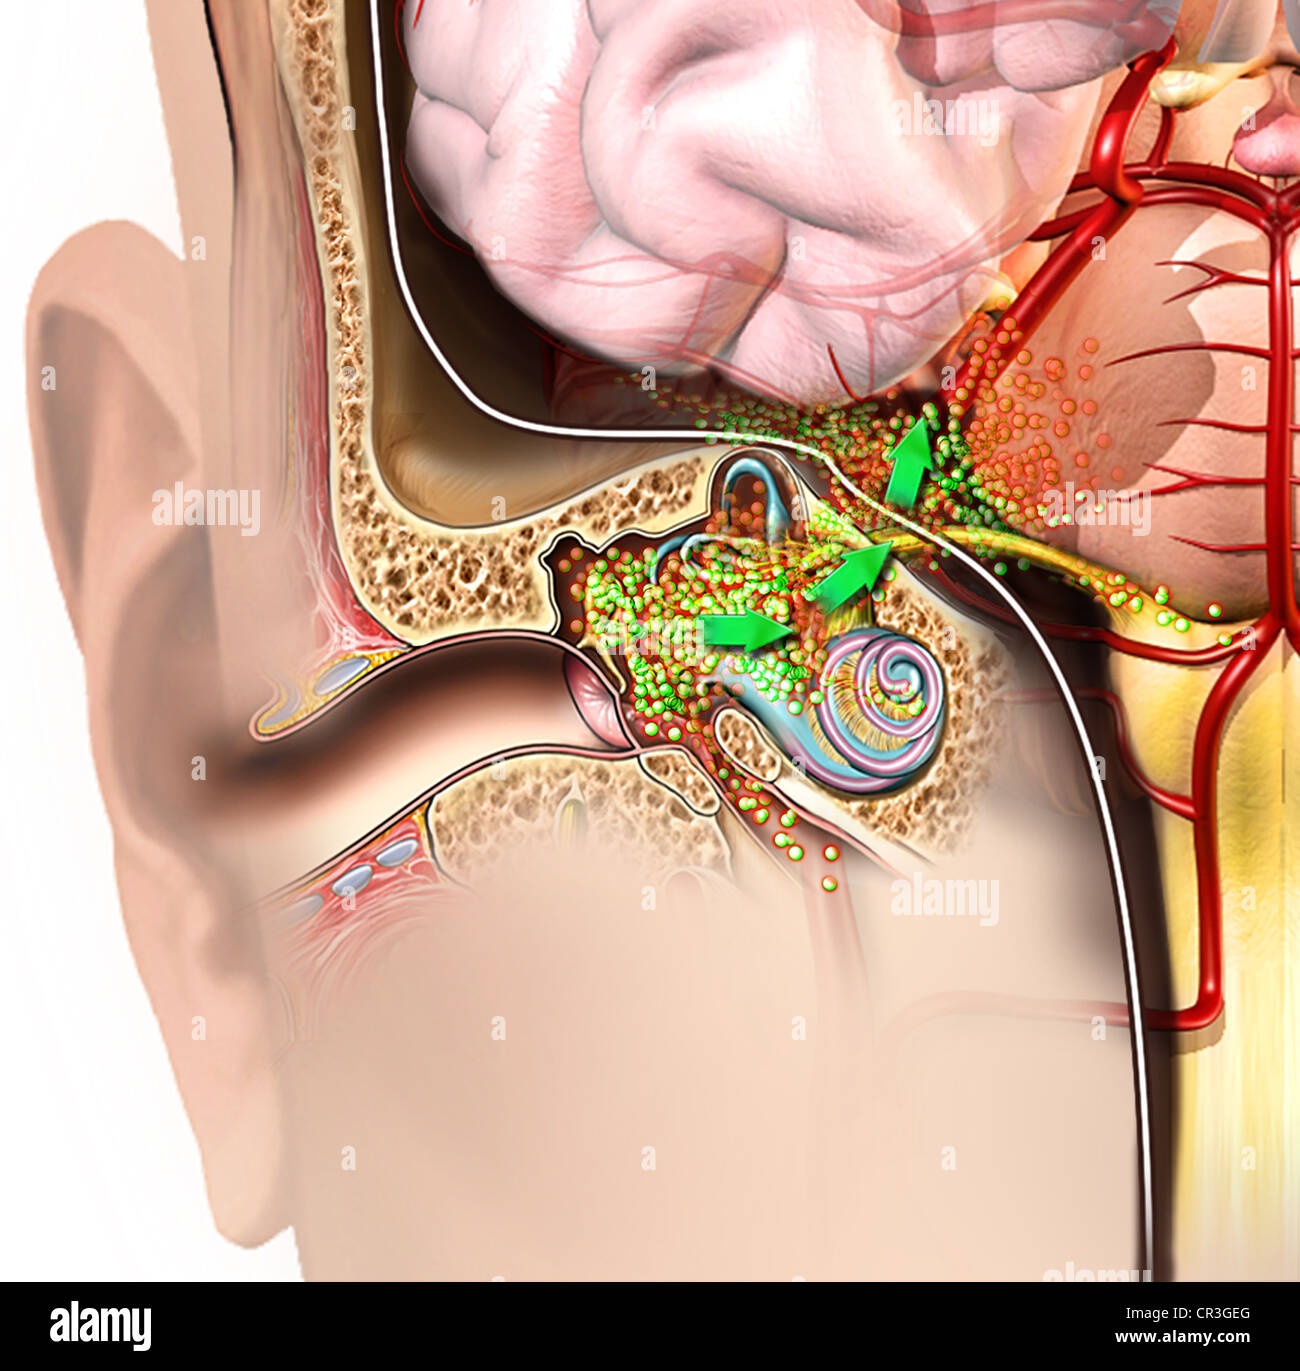 hight resolution of detail of right ear and brain anatomy with spread of bacterial meningitis